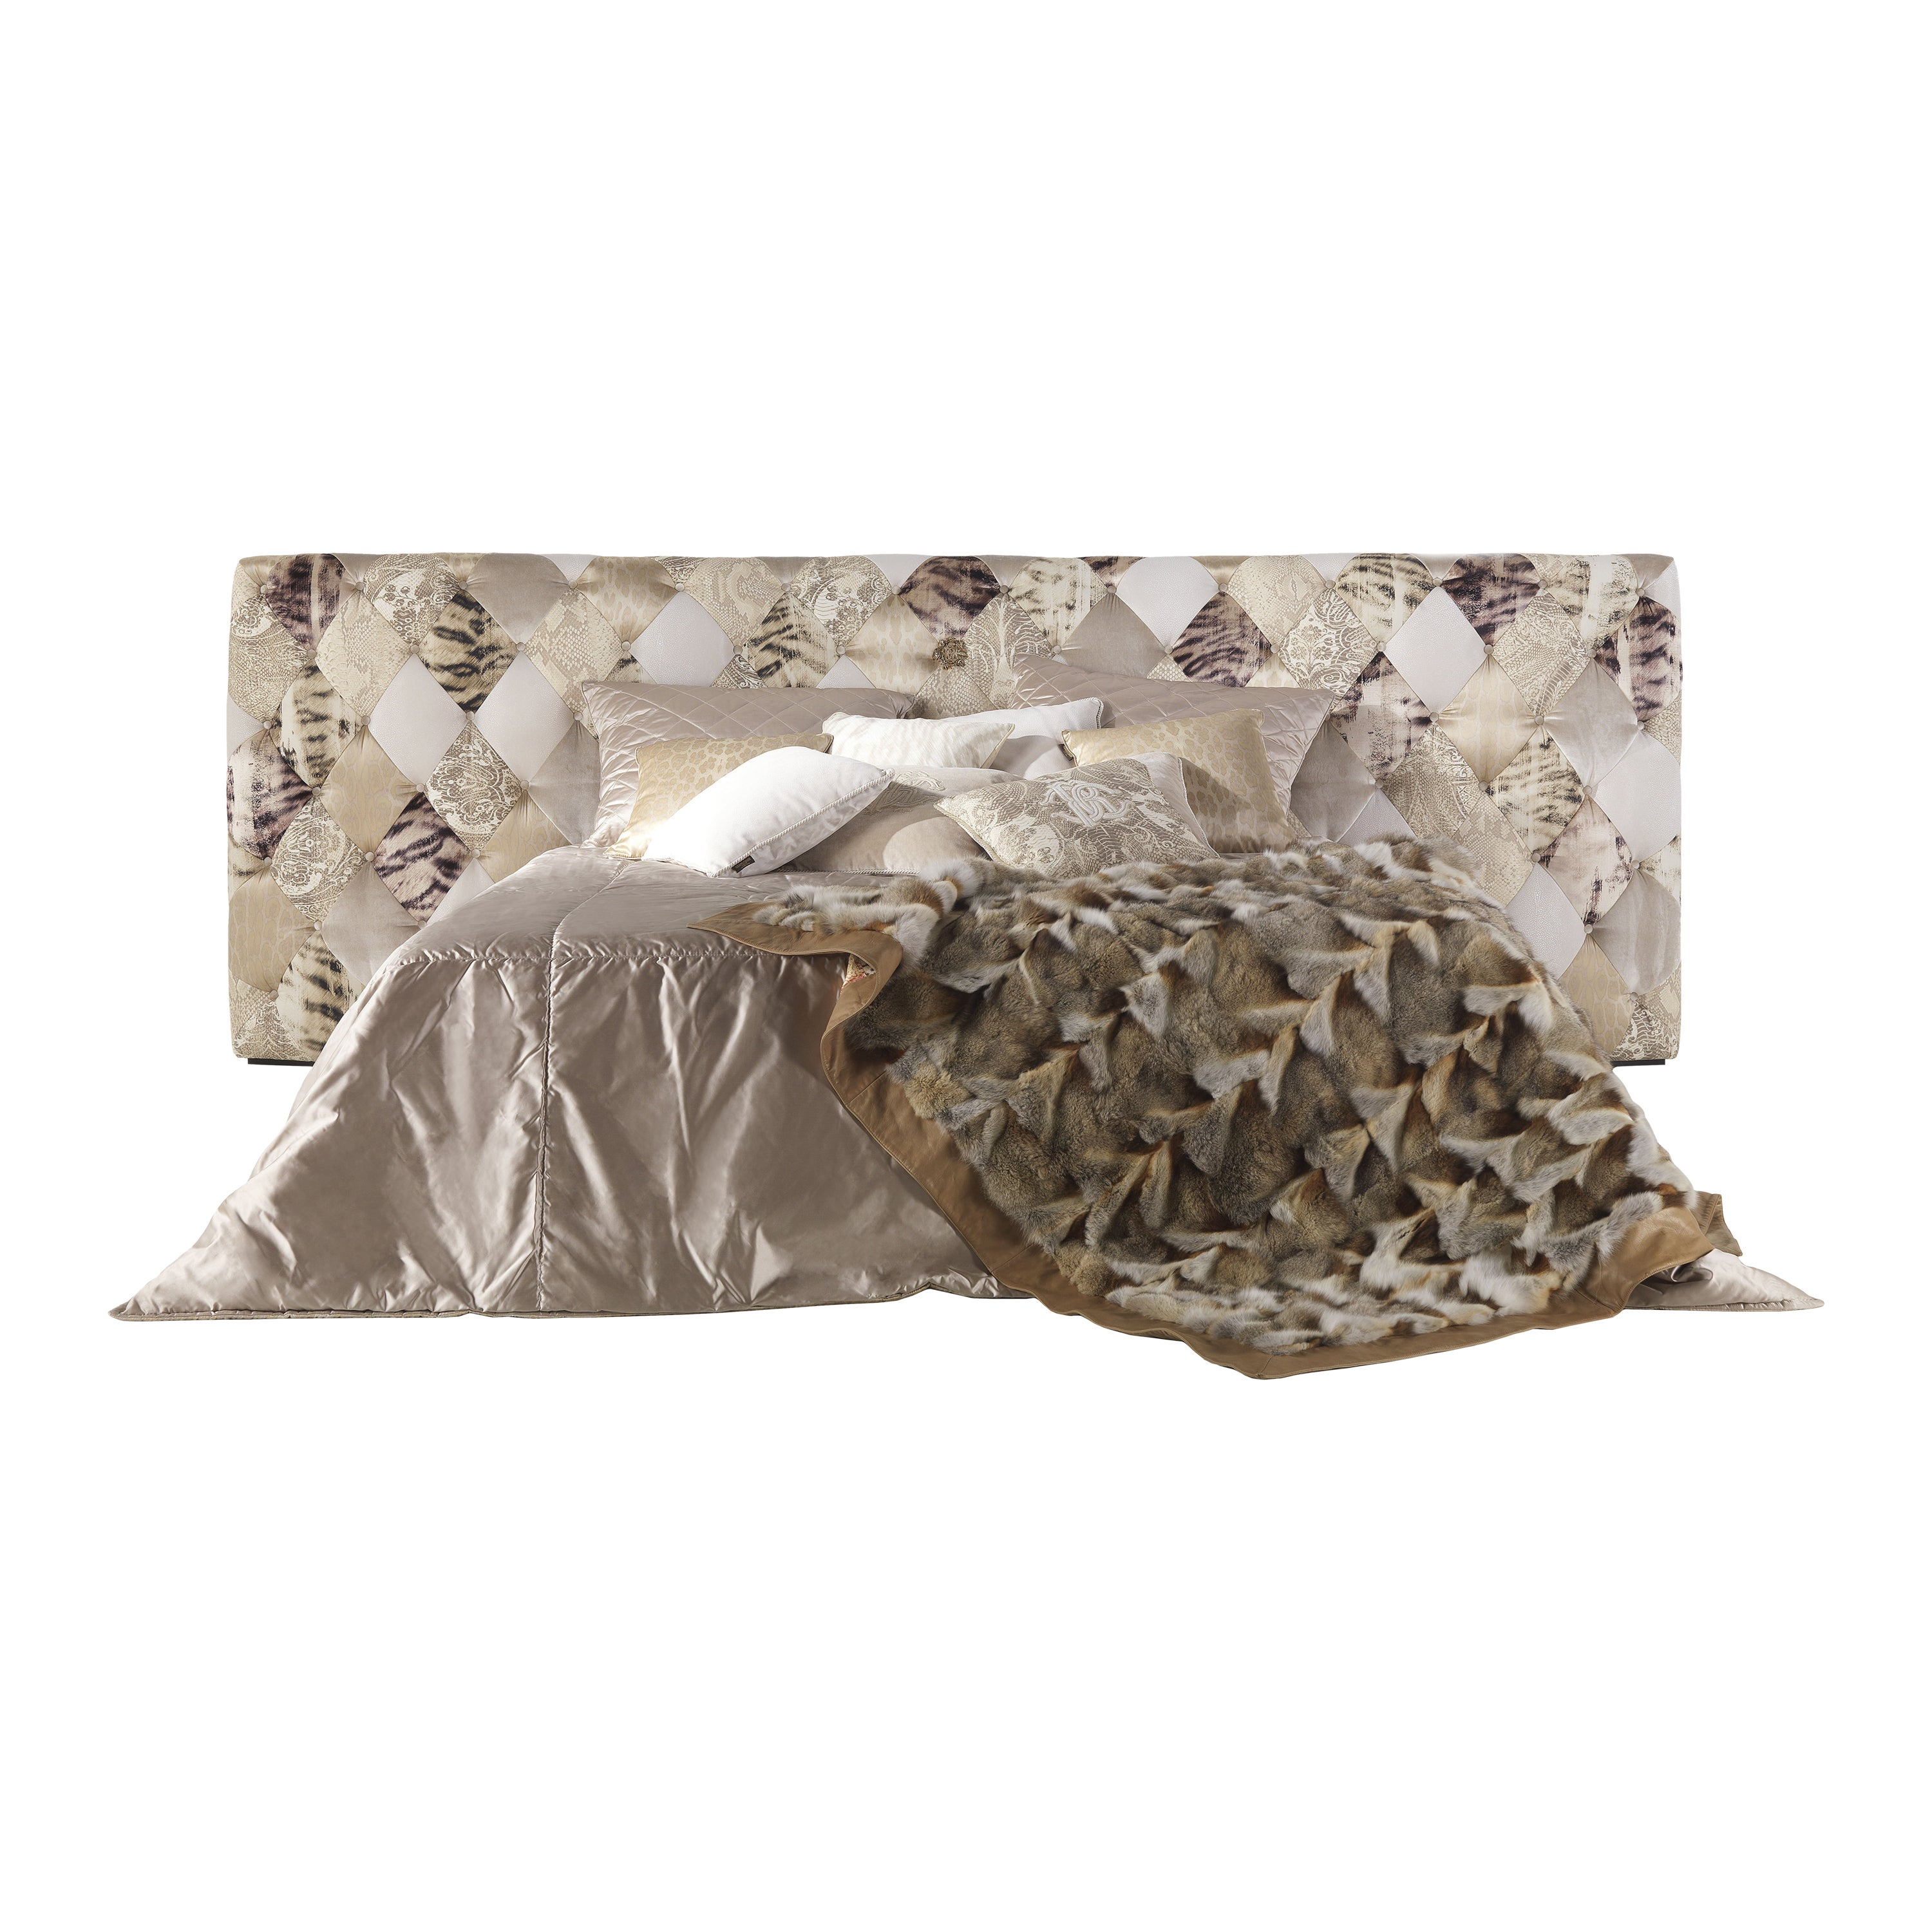 Limbo Bed in Light Patchwork Pattern by Roberto Cavalli Home Interiors